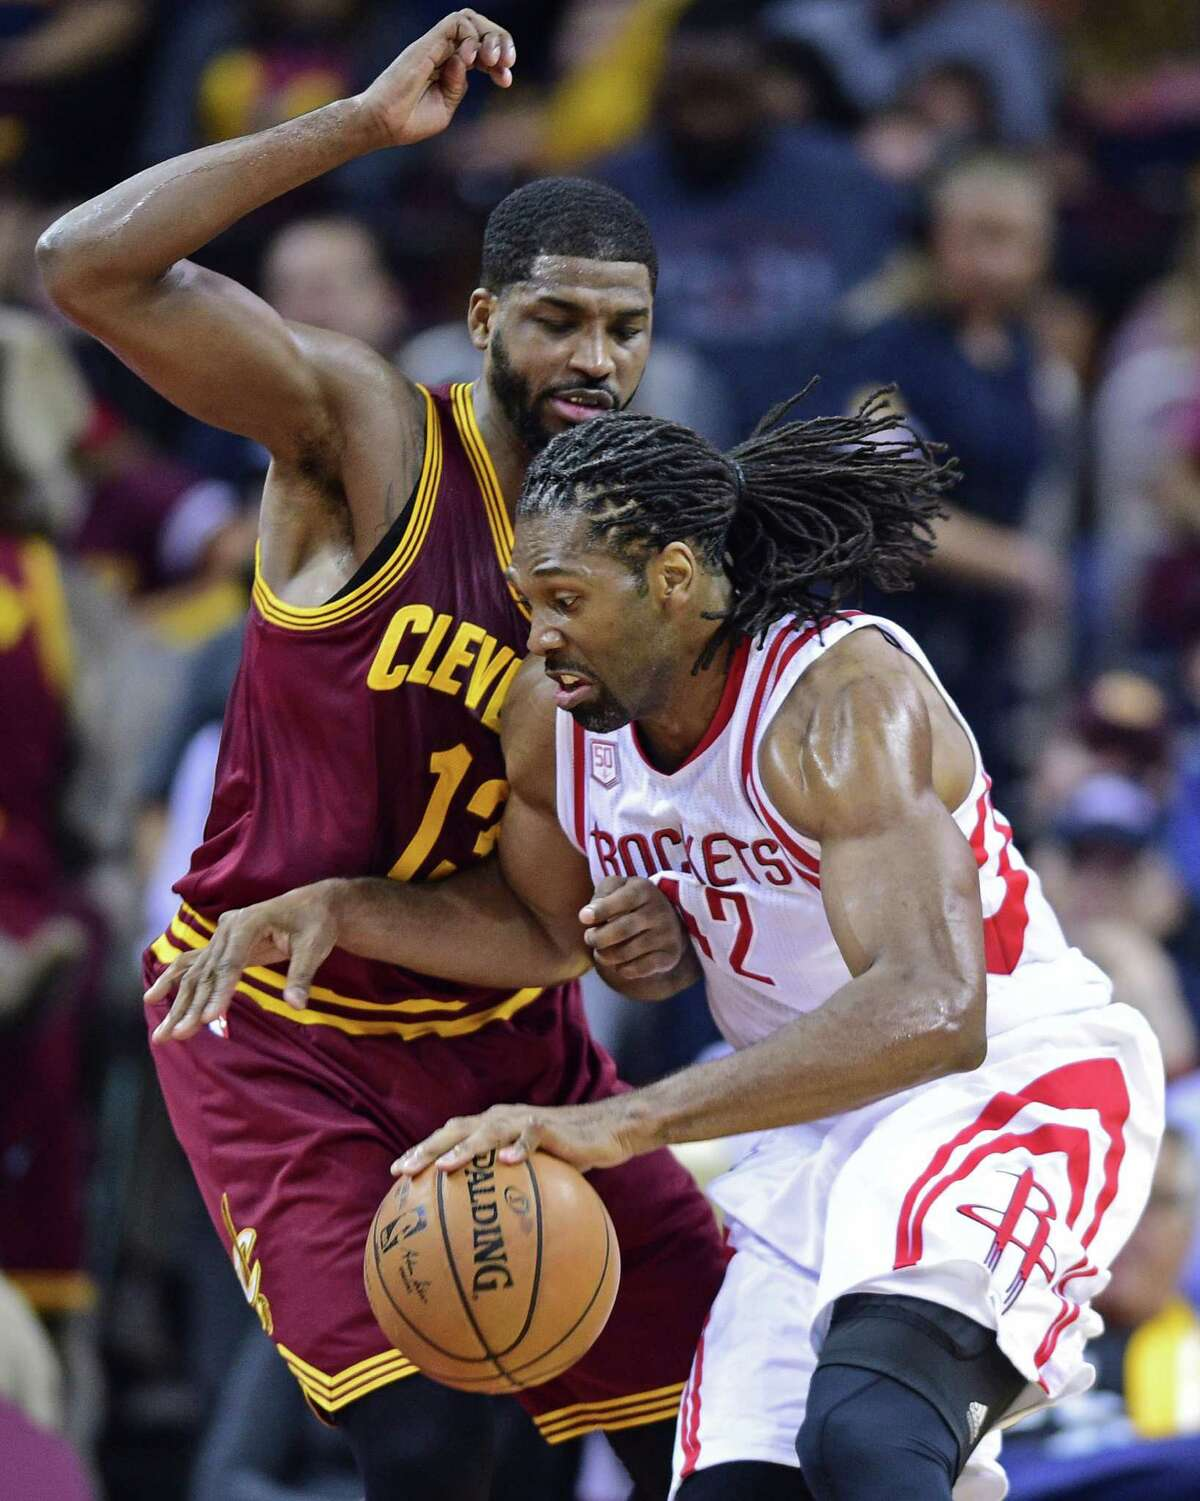 Houston Rockets forward Nene (42) drives on Cleveland Cavaliers forward Tristan Thompson (13) in the first half of an NBA basketball game Tuesday, Nov. 1, 2016, in Cleveland. (AP Photo/David Dermer)